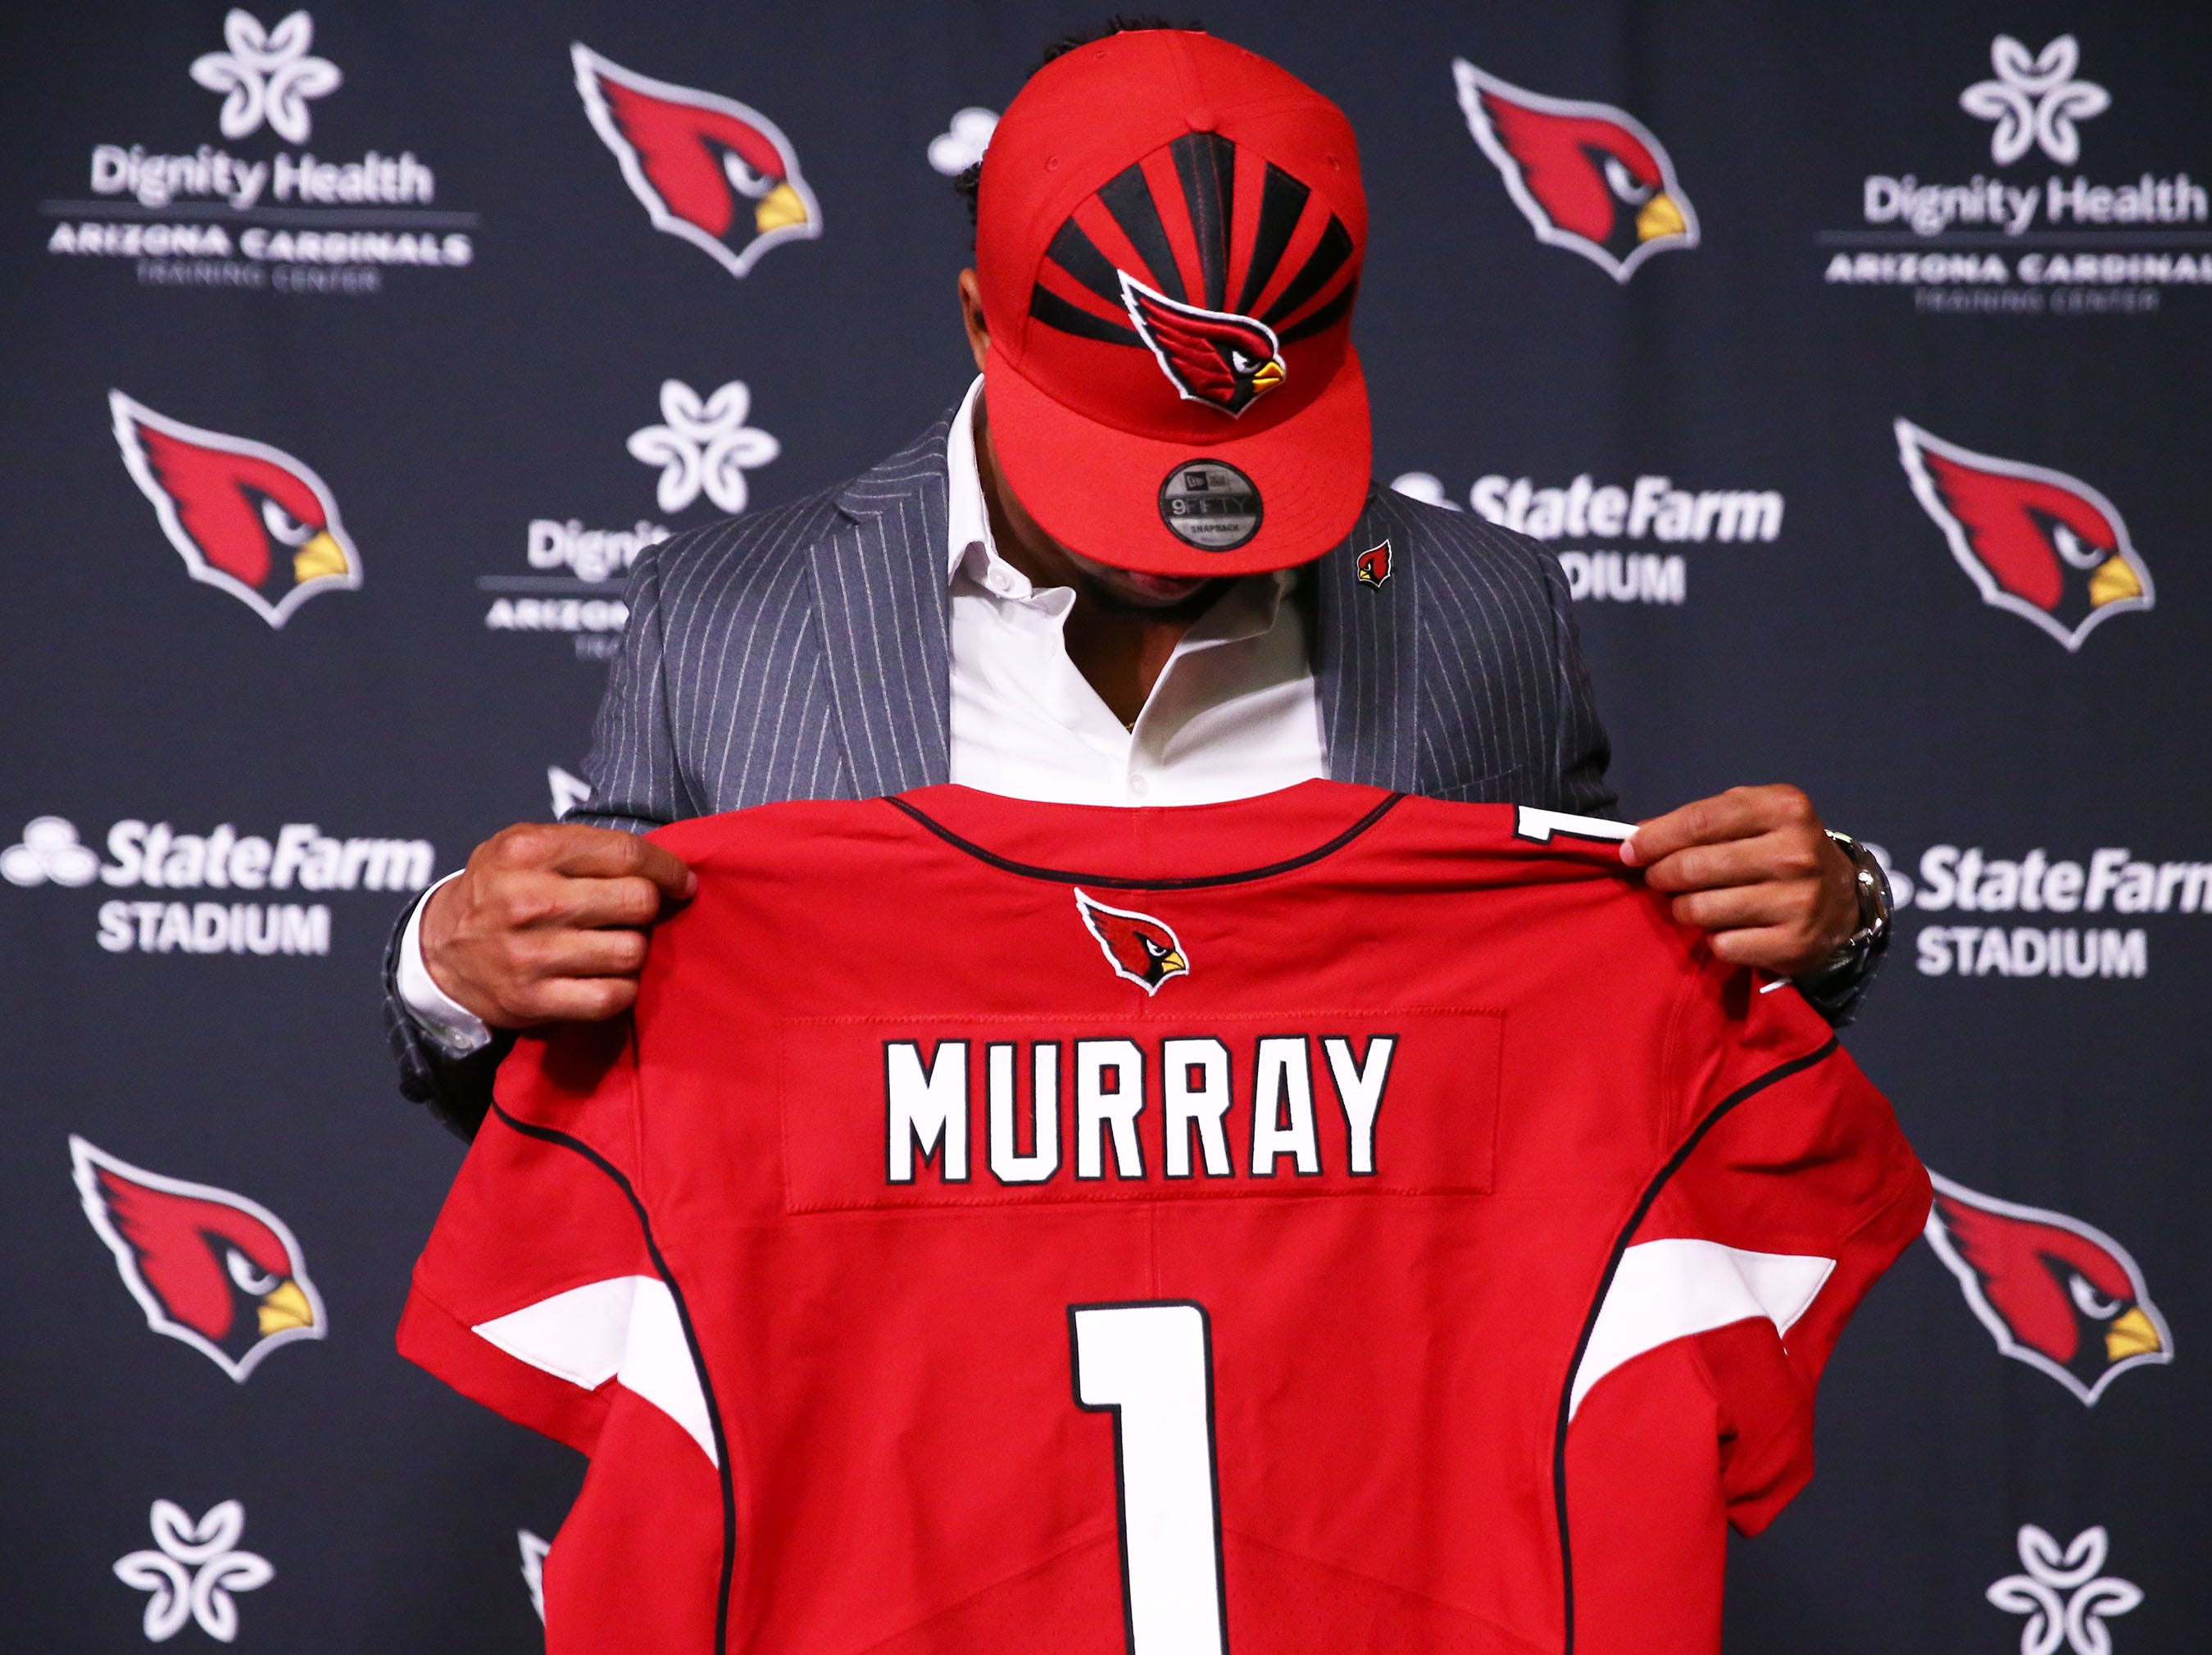 Cardinals first-round draft pick quarterback Kyler Murray looks at his jersey during an introductory news  conference on April 26.